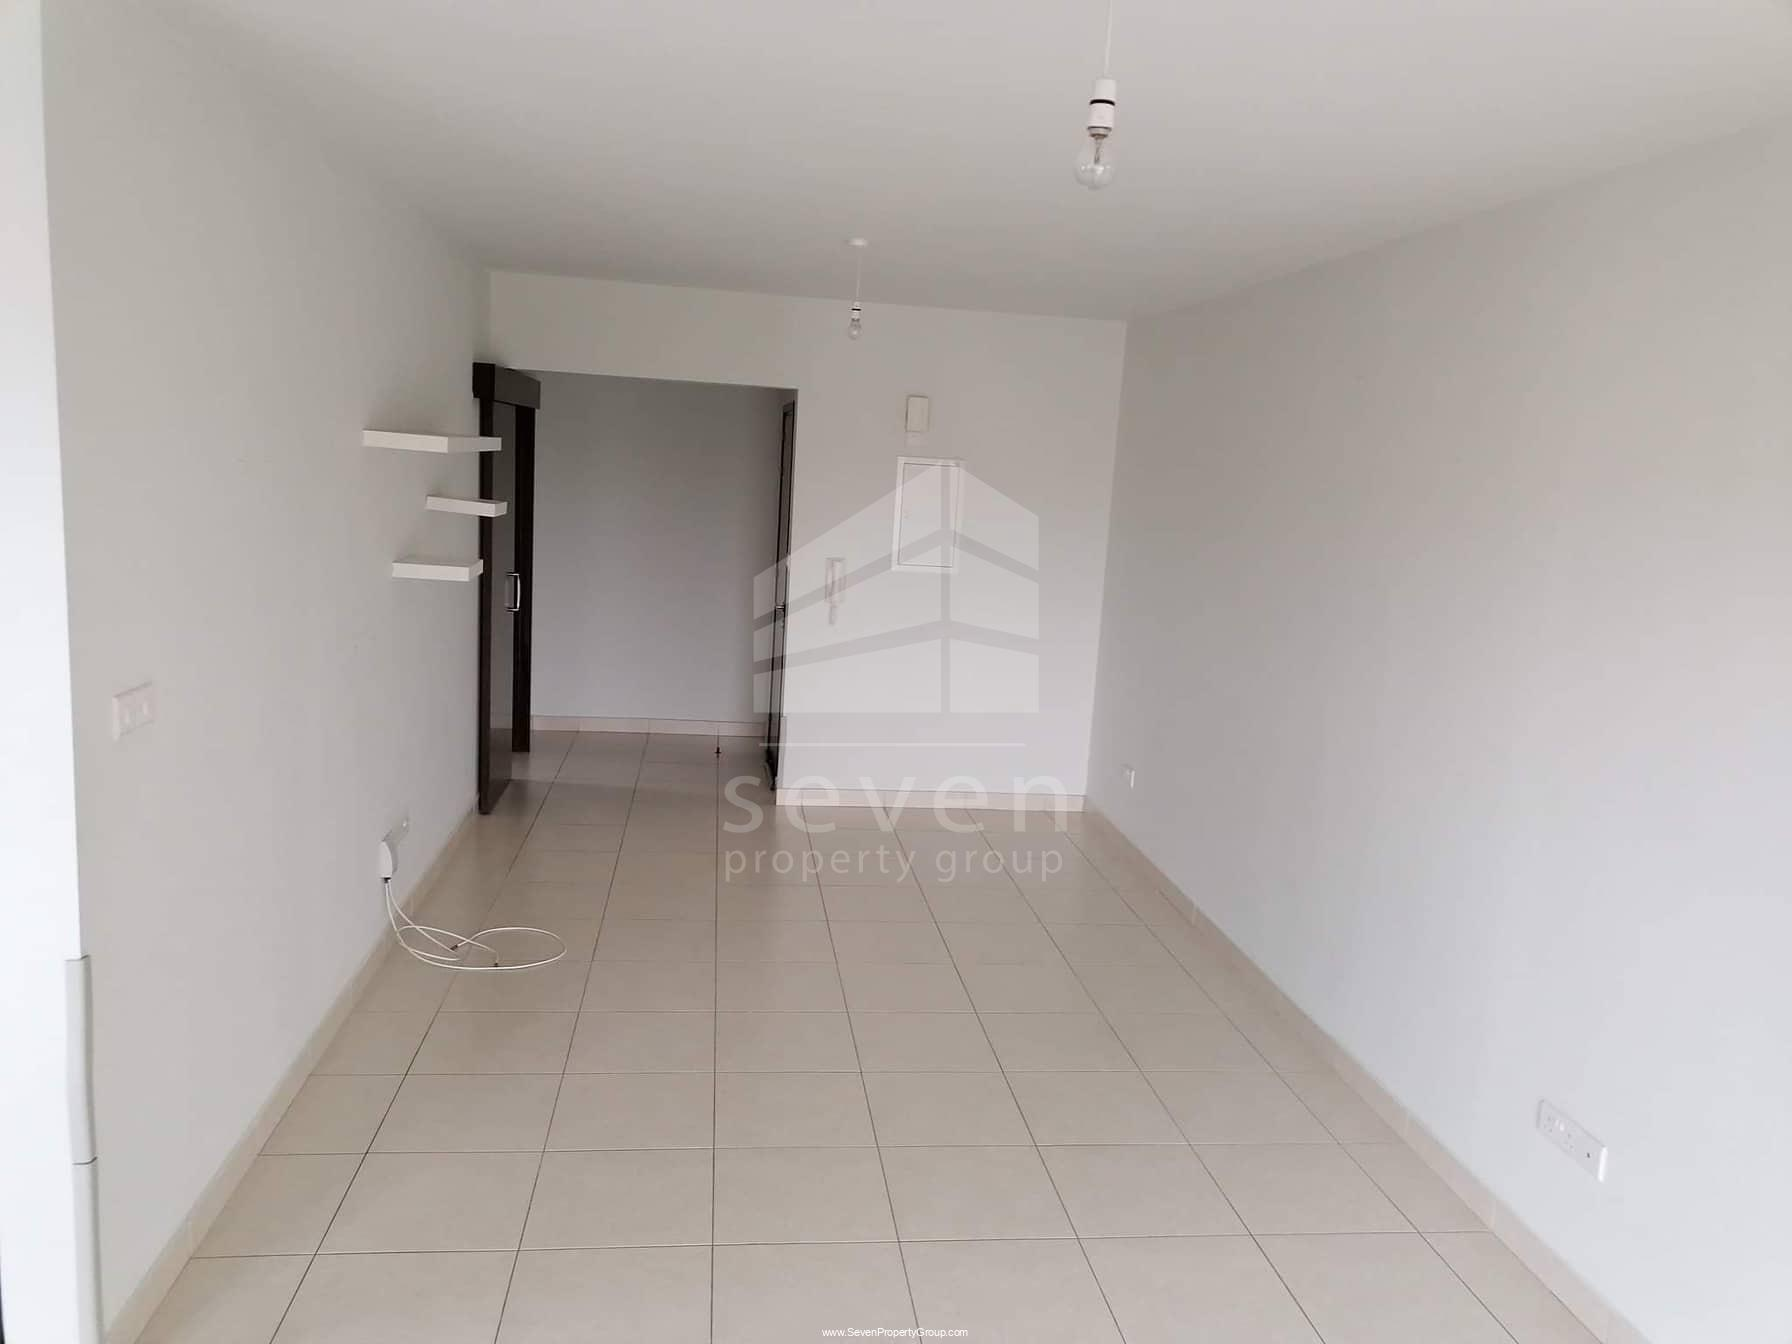 2BED FLAT FOR RENT IN KRASA